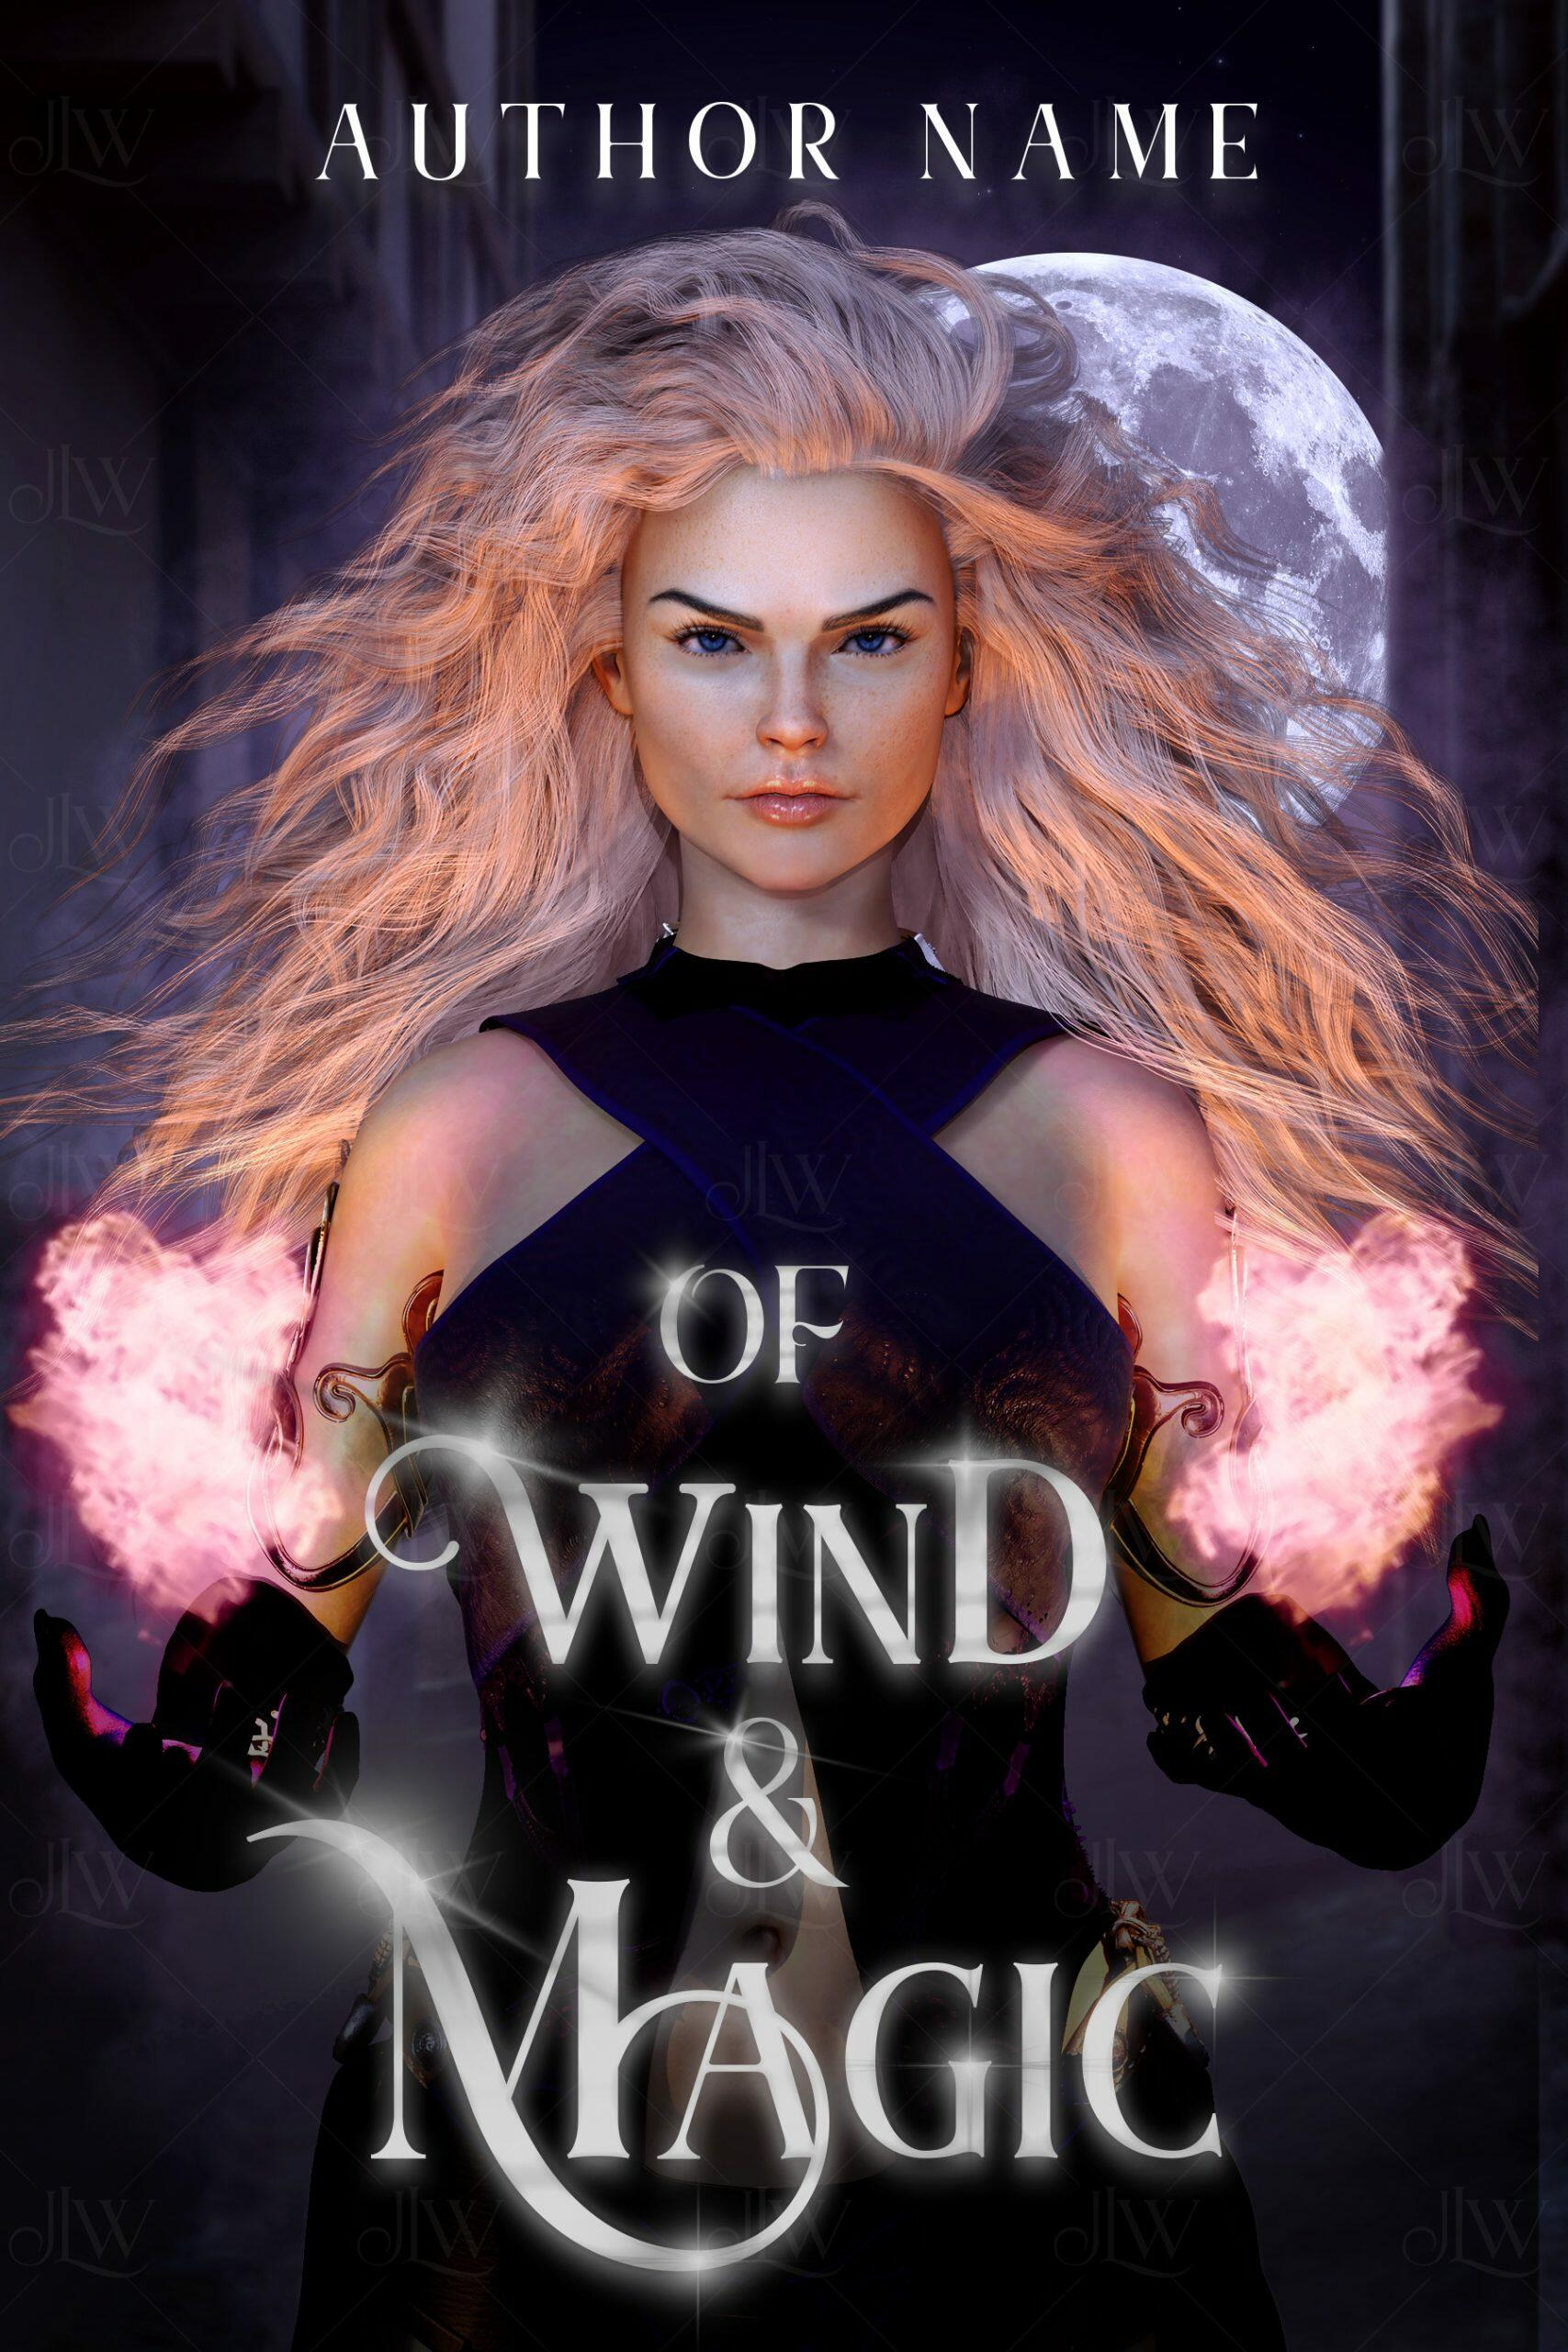 A fantasy book cover with a beautiful woman holding magic in a village